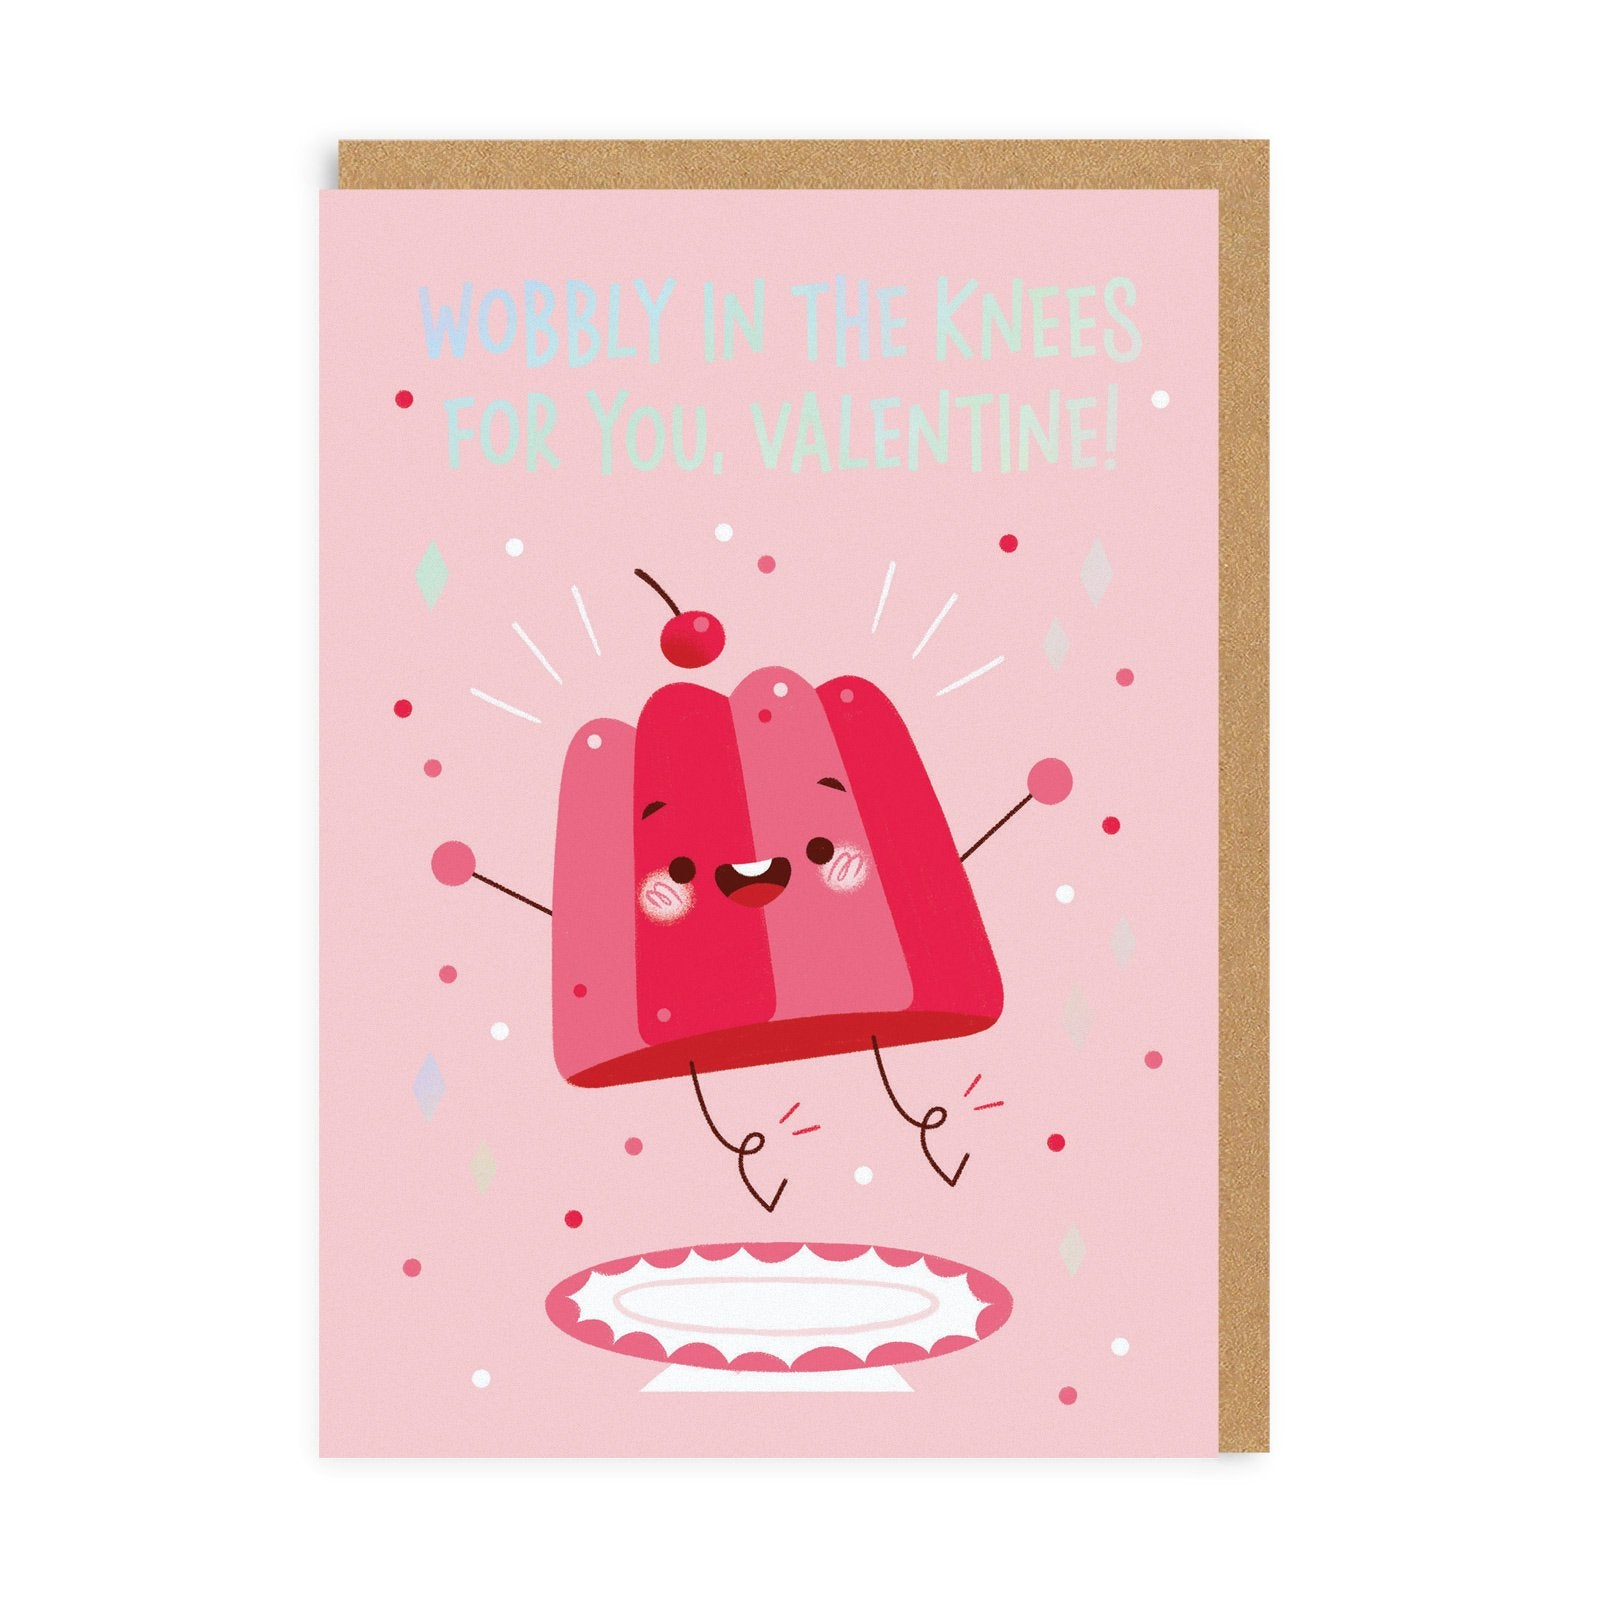 Wobbly In the Knees Greeting Card